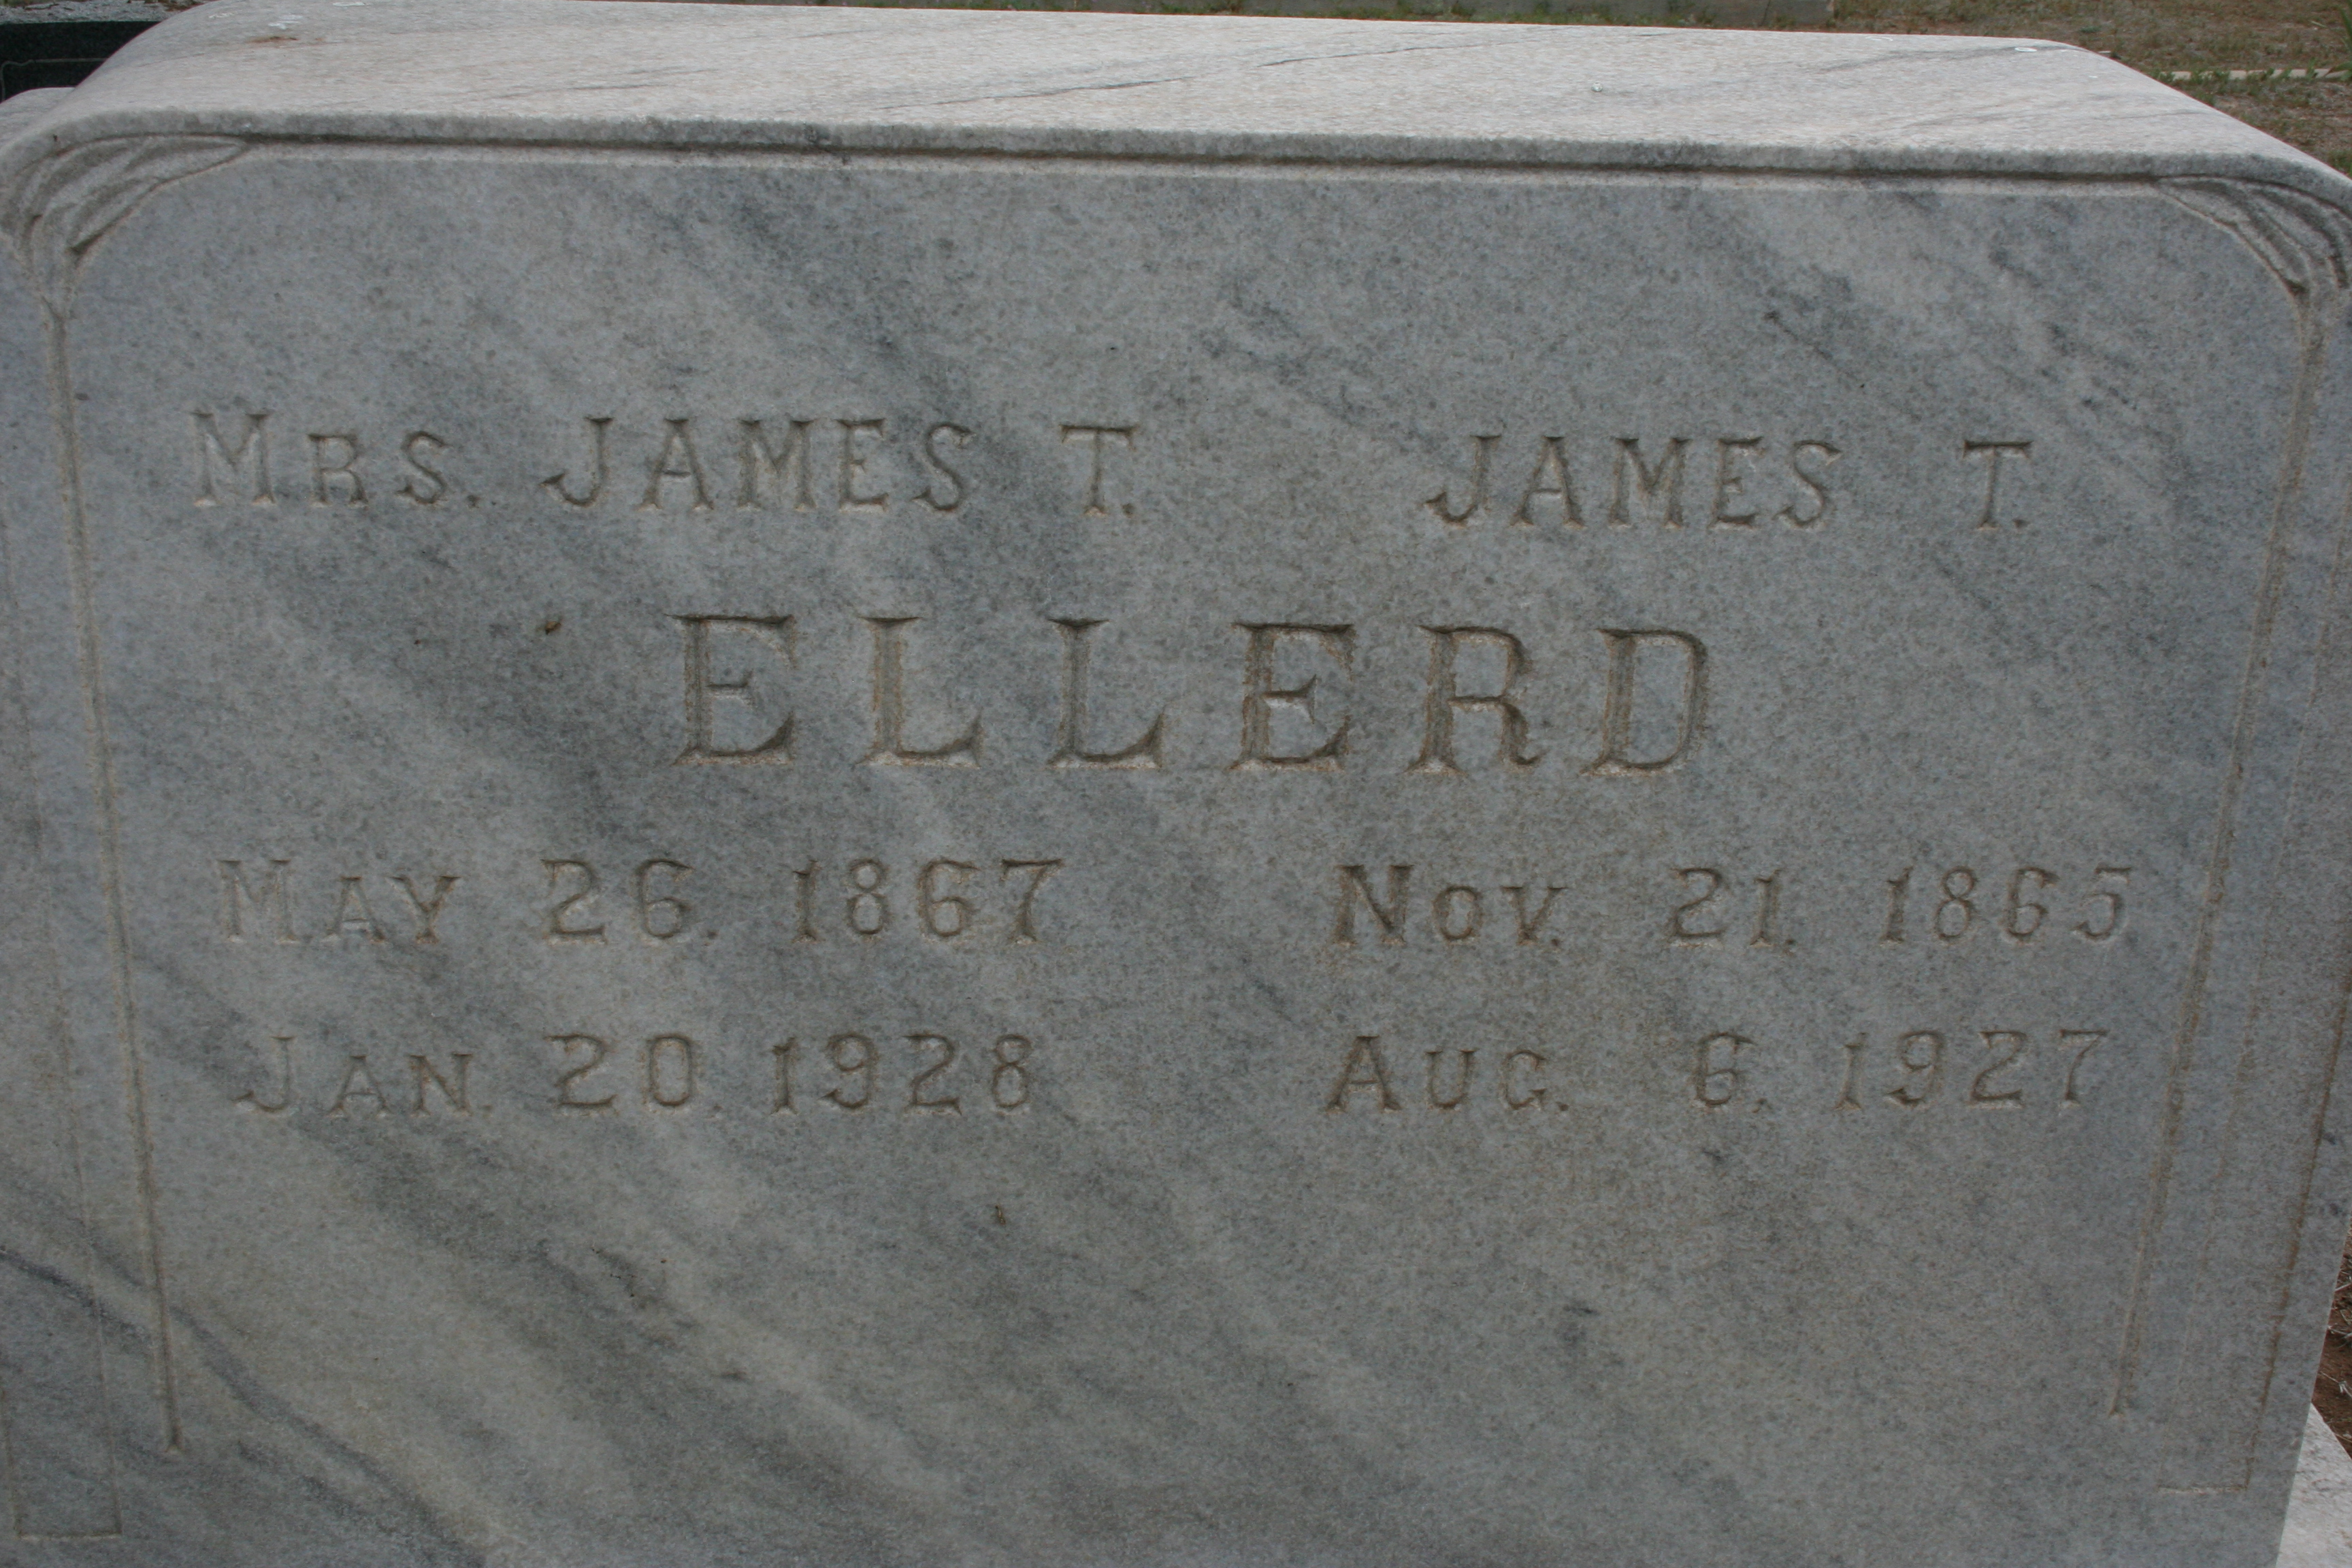 James Thomas Ellerd